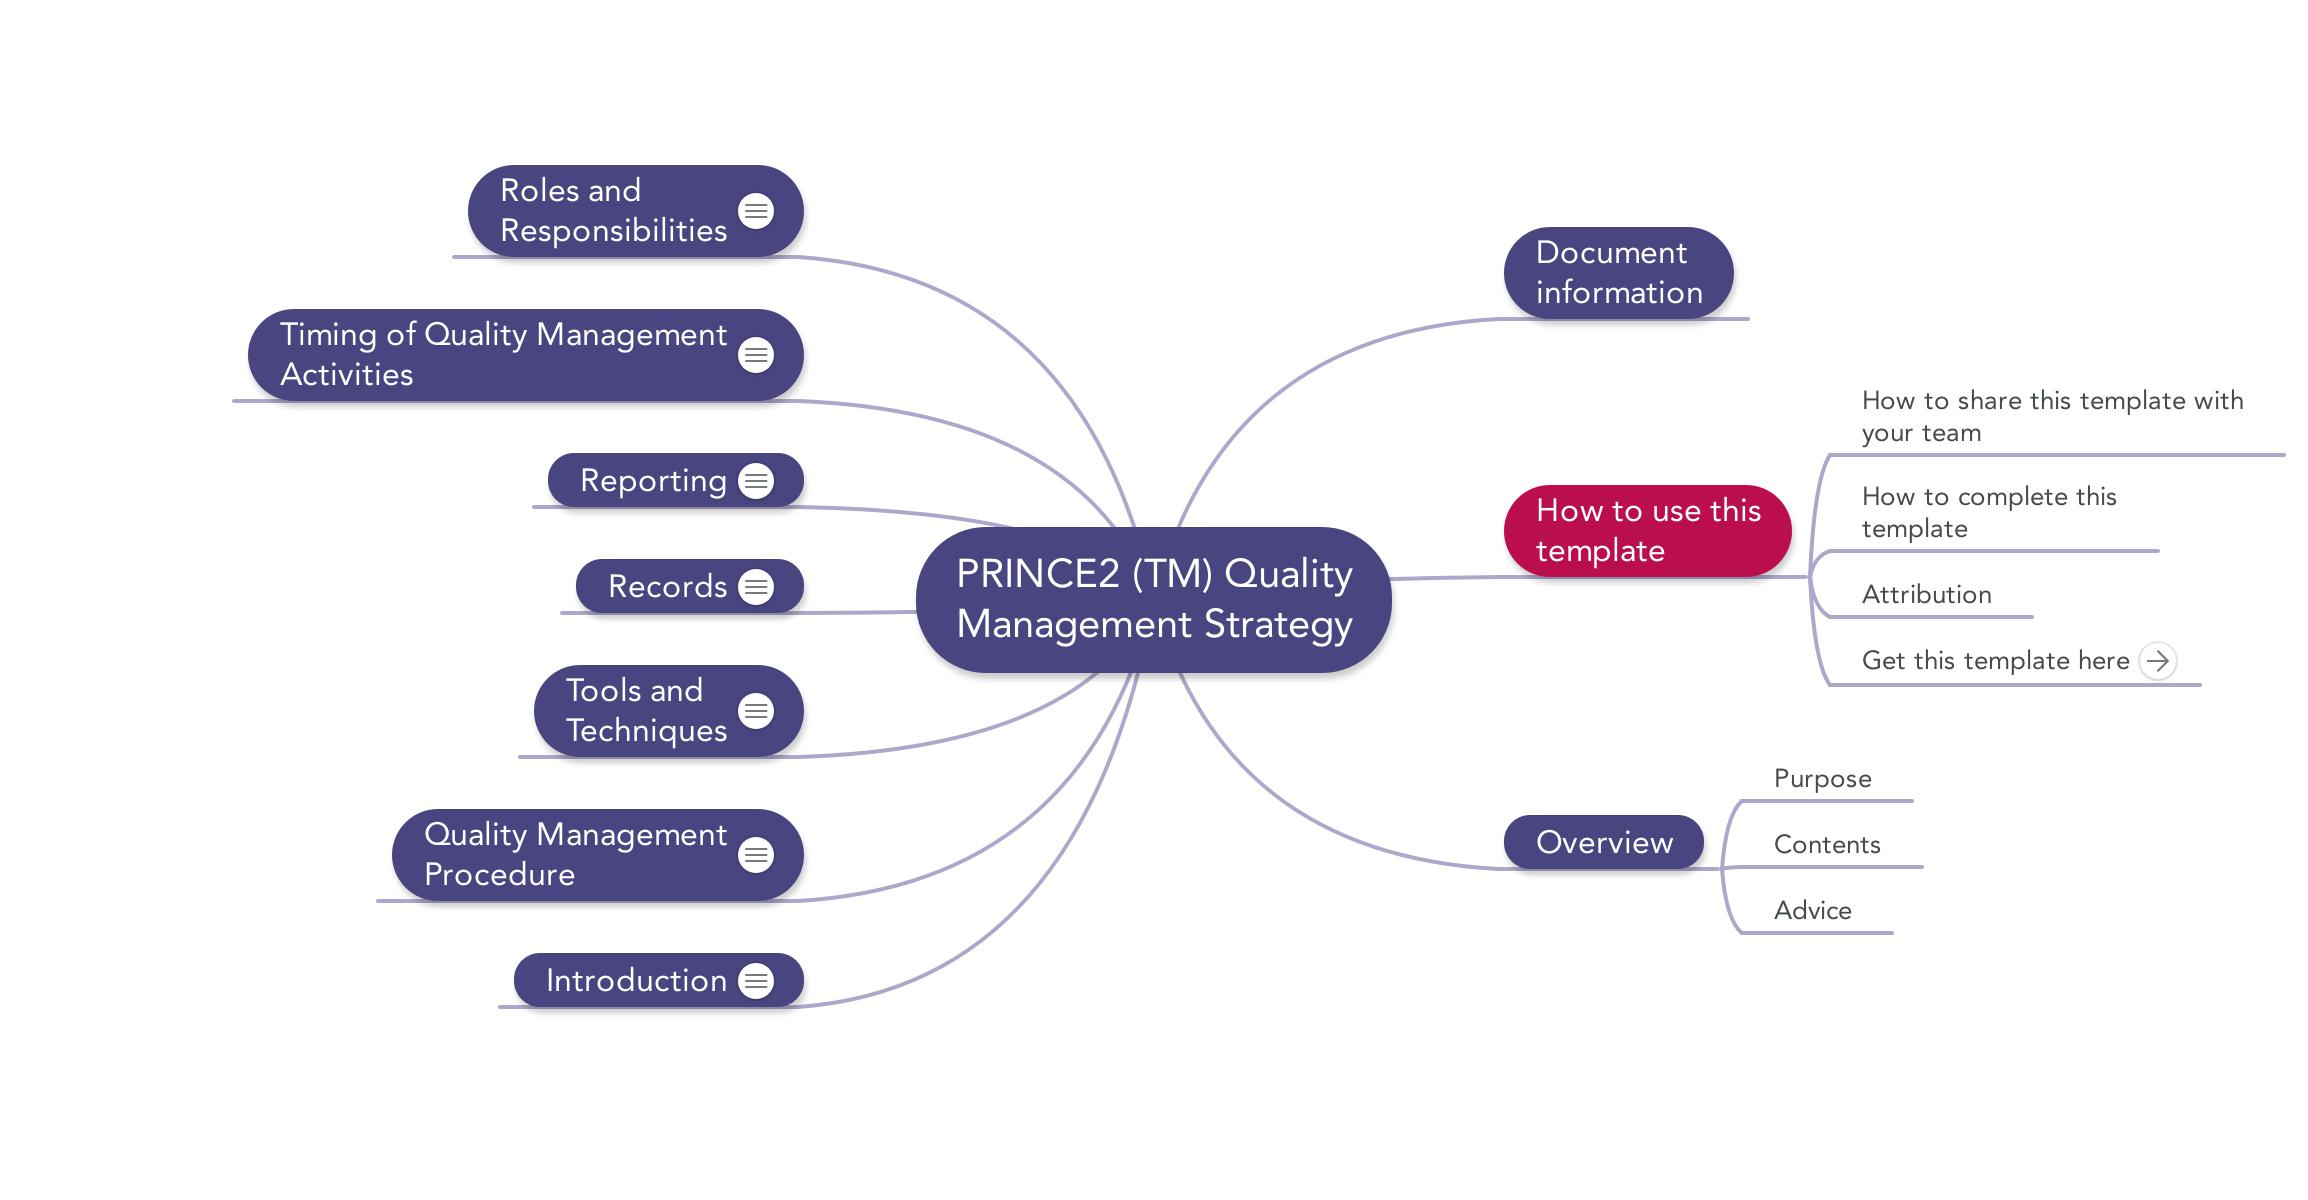 Prince2 Quality Management Strategy | Download template